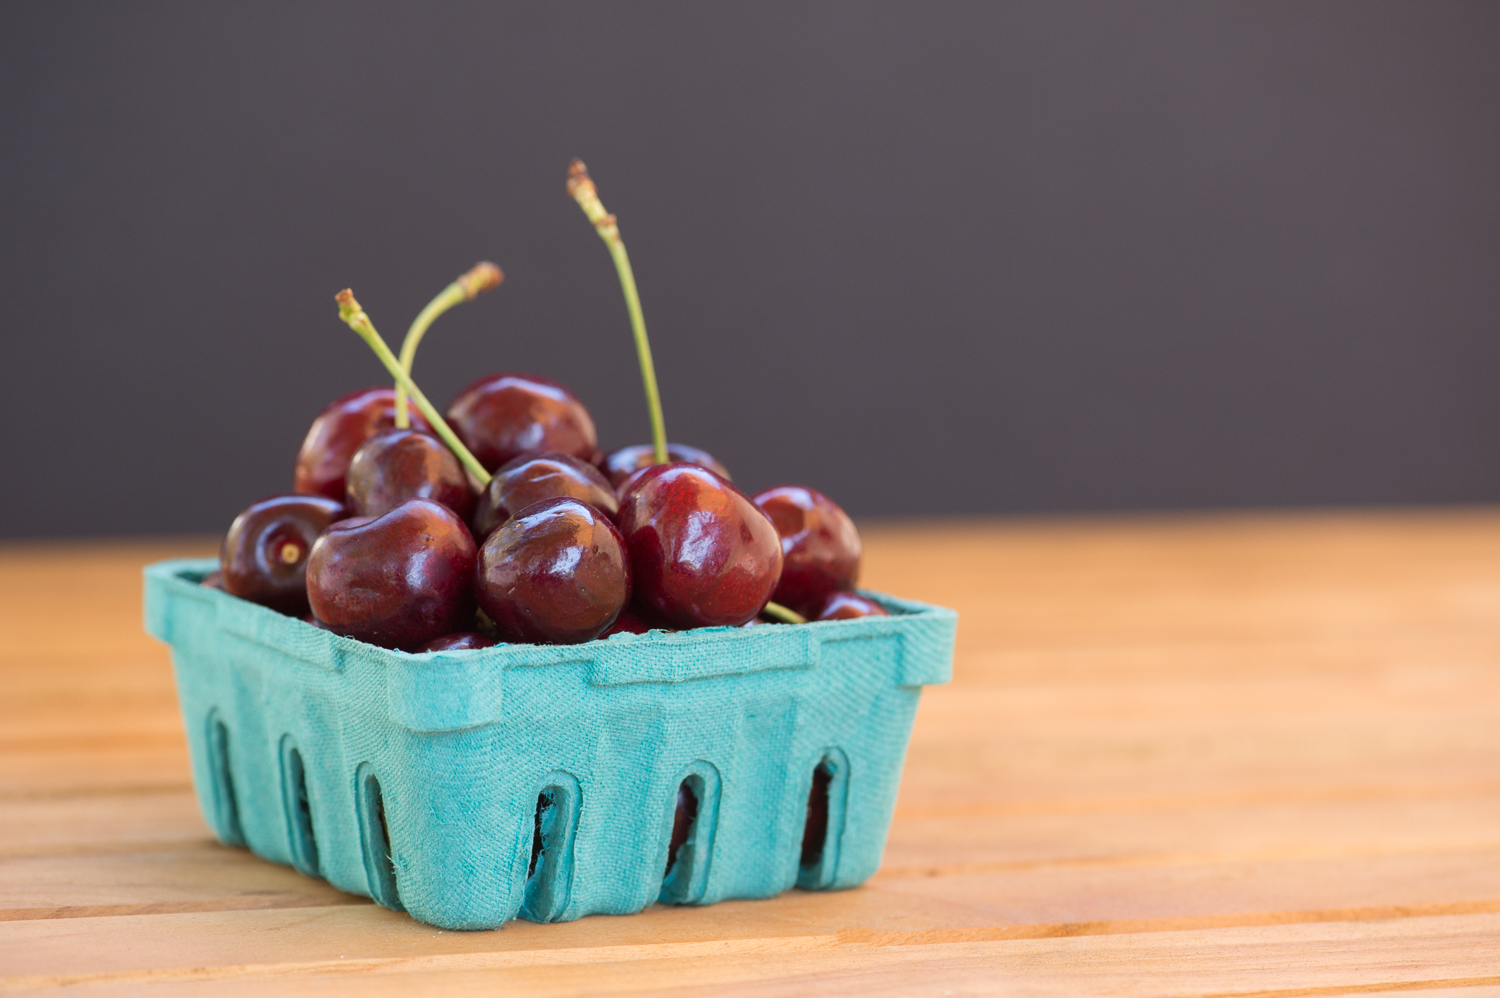 cherry-basket.jpg